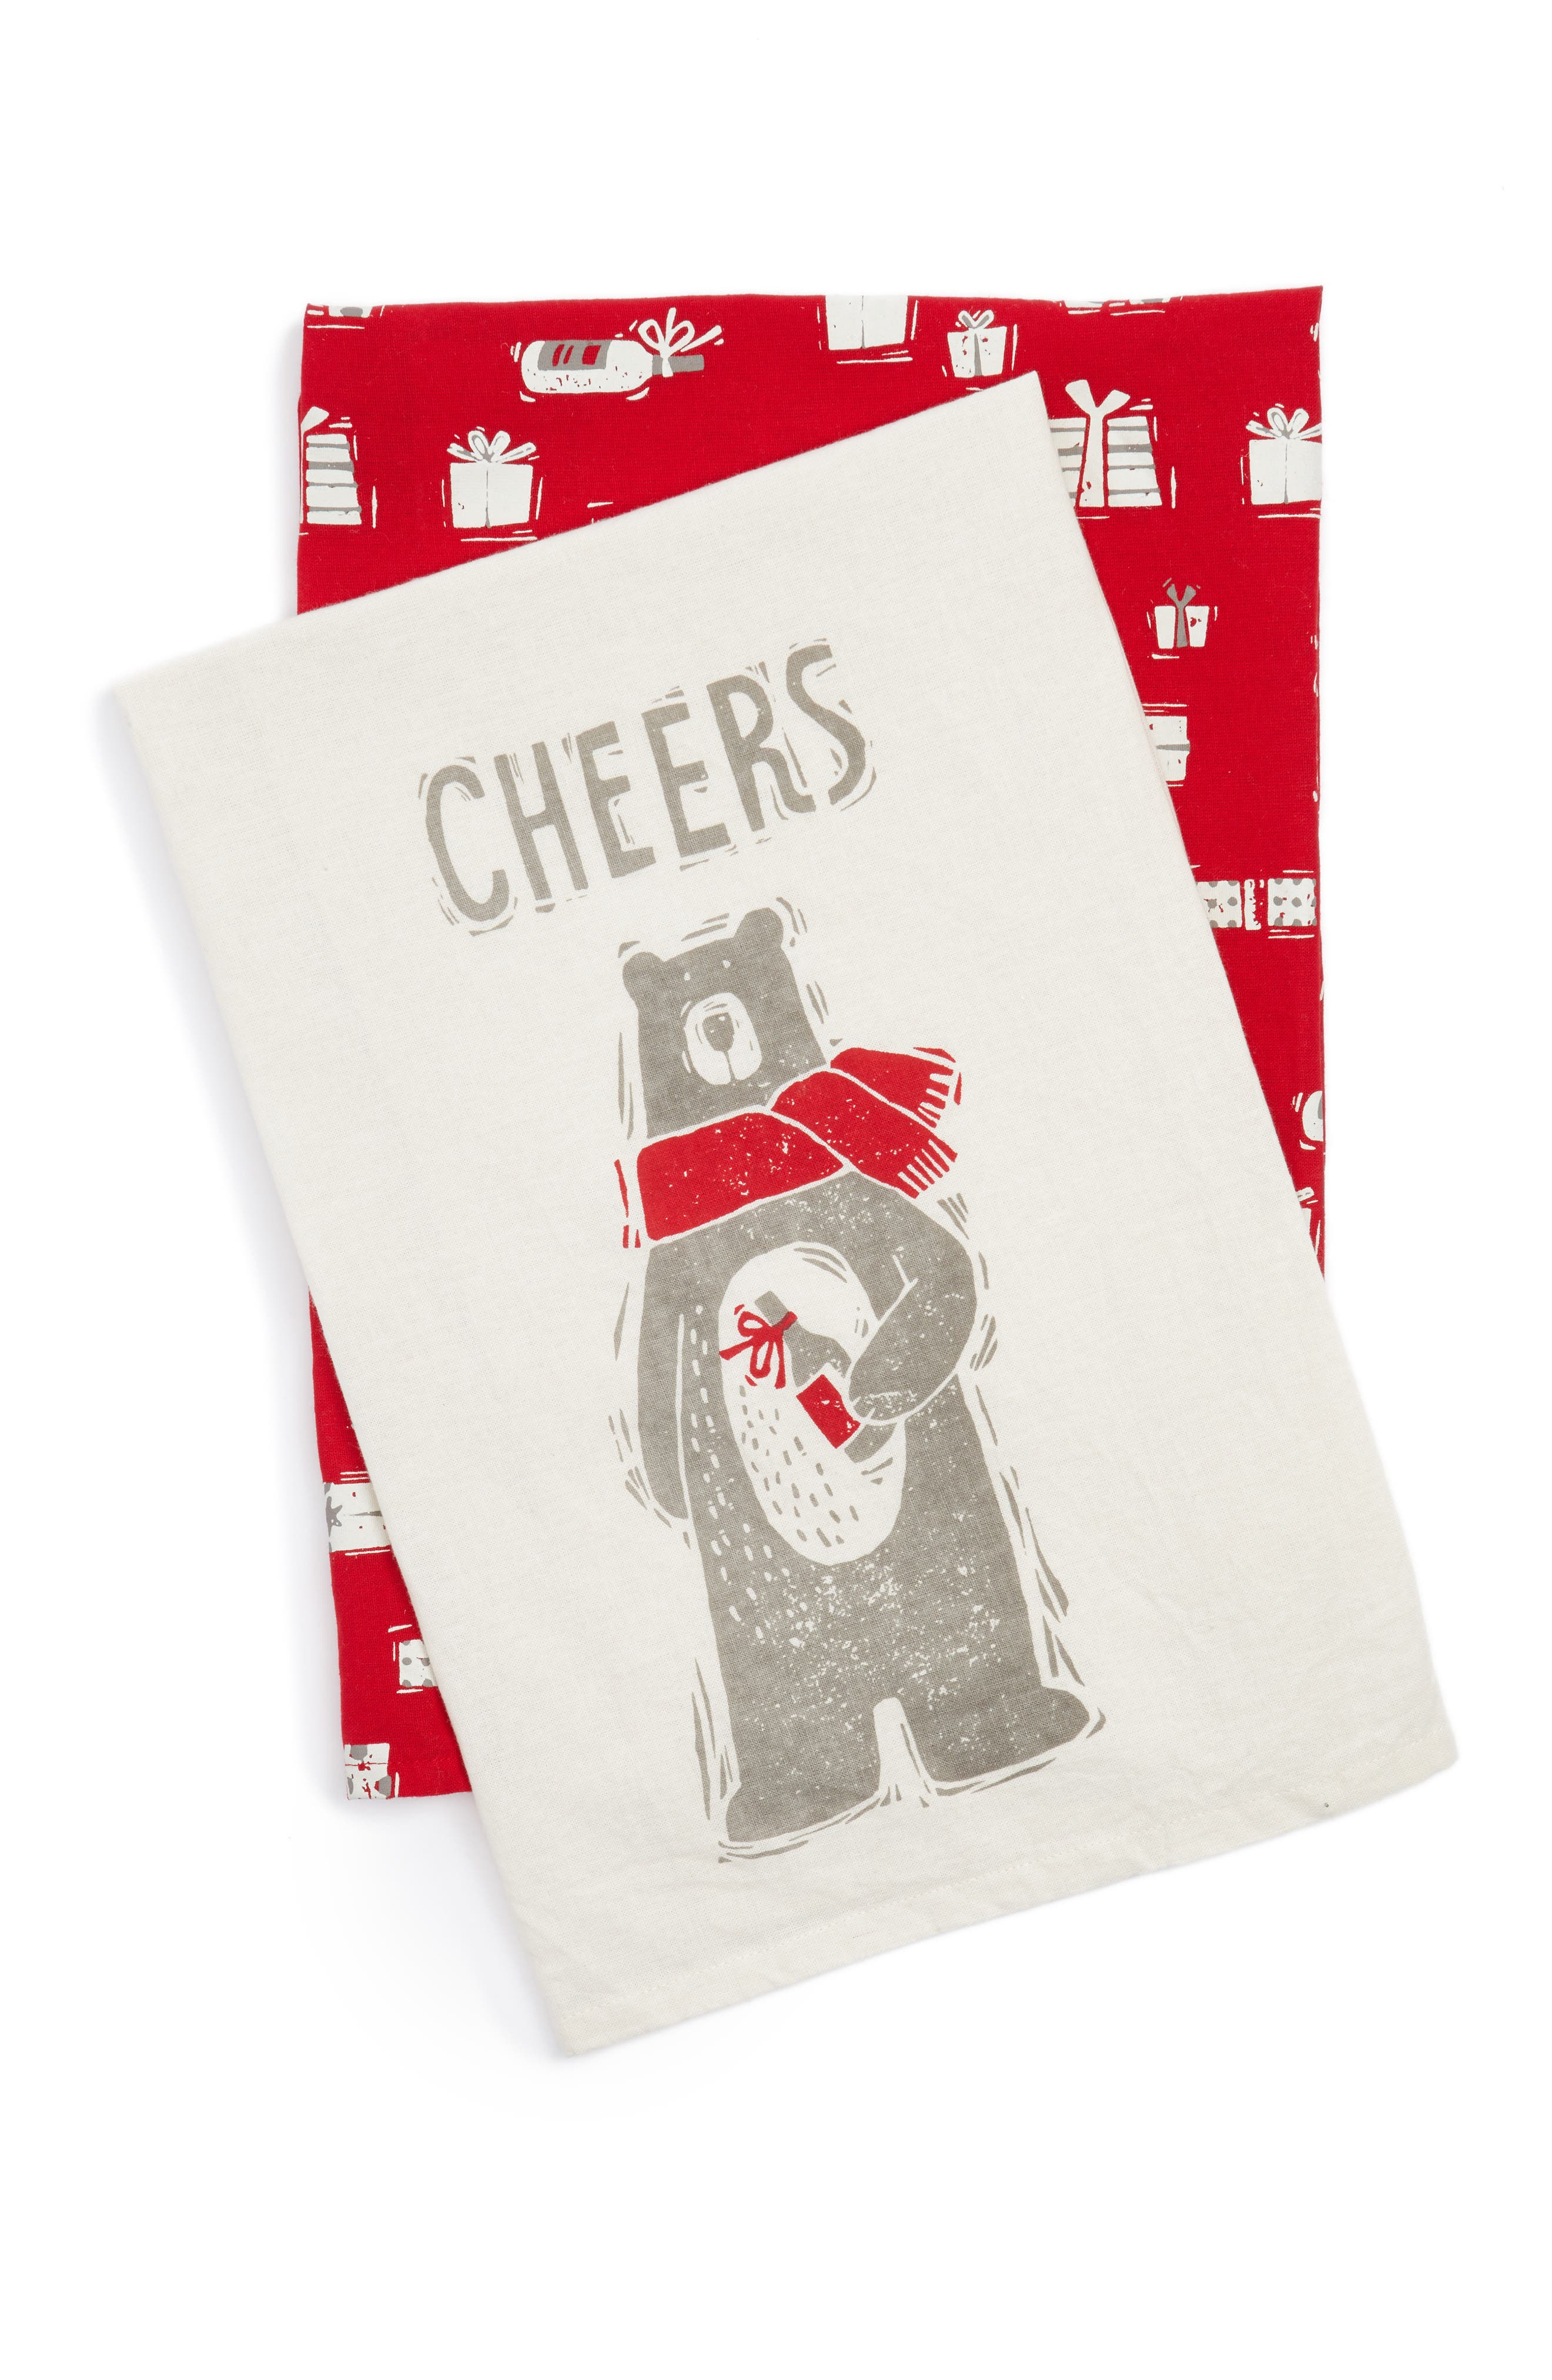 Cheers Set of 2 Dish Towels,                             Main thumbnail 1, color,                             900